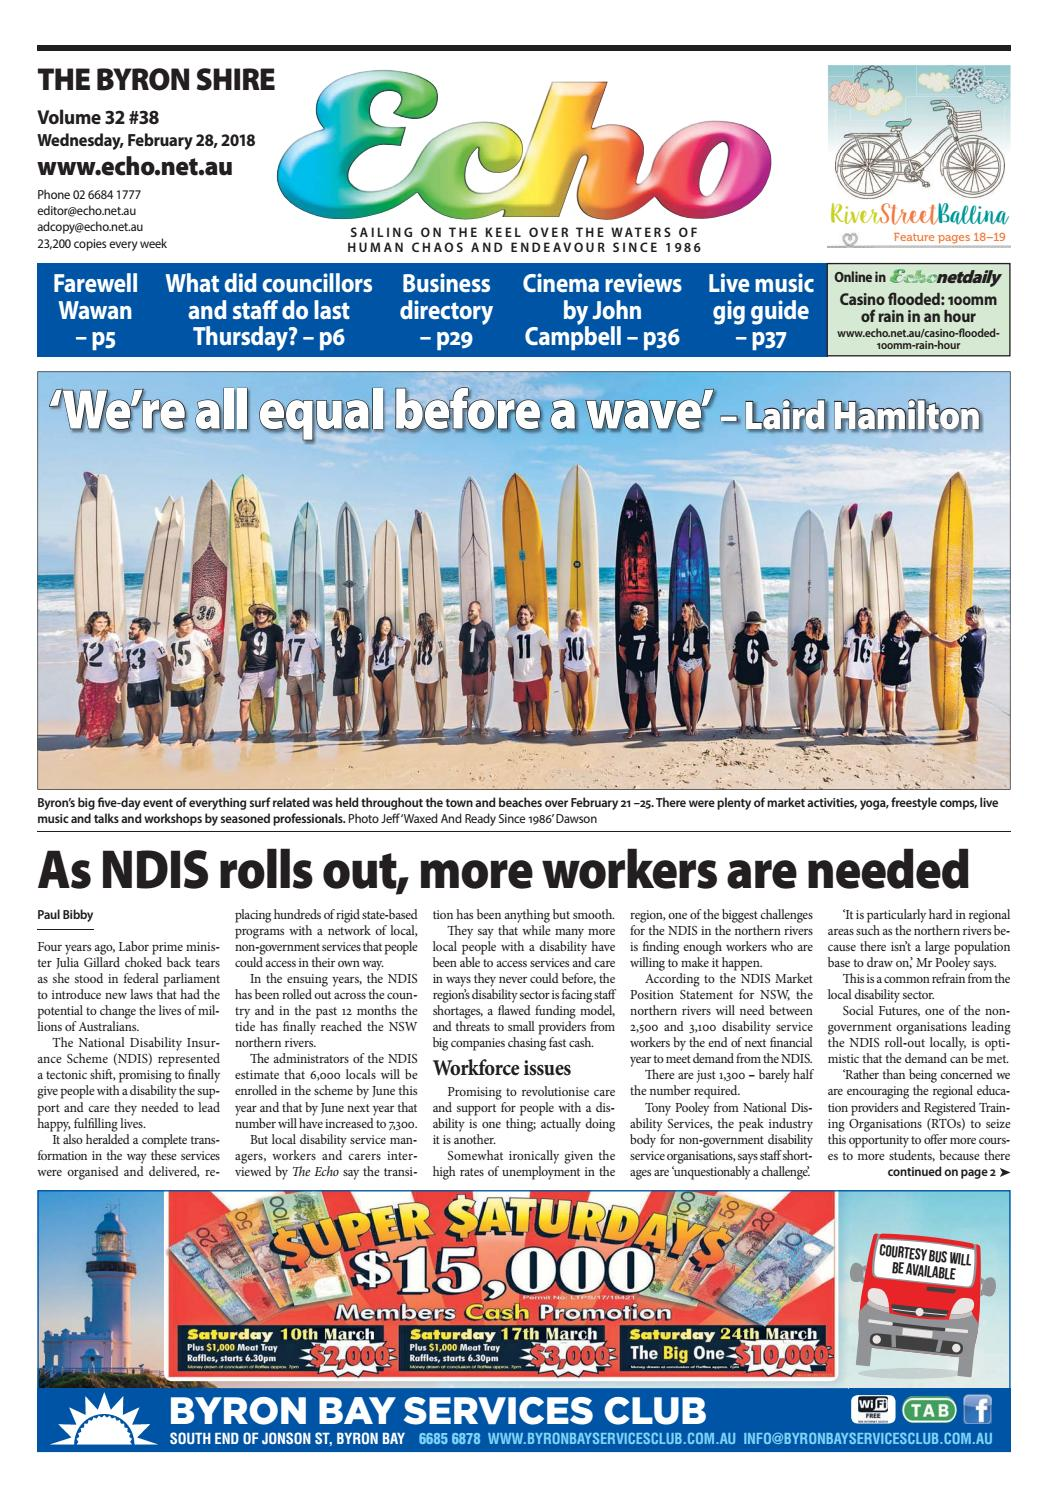 The Byron Shire Echo Issue 3238 February 28 2018 By Scr Circuit Design Http Homemadecircuitsandschematicsblogspotcom Publications Issuu